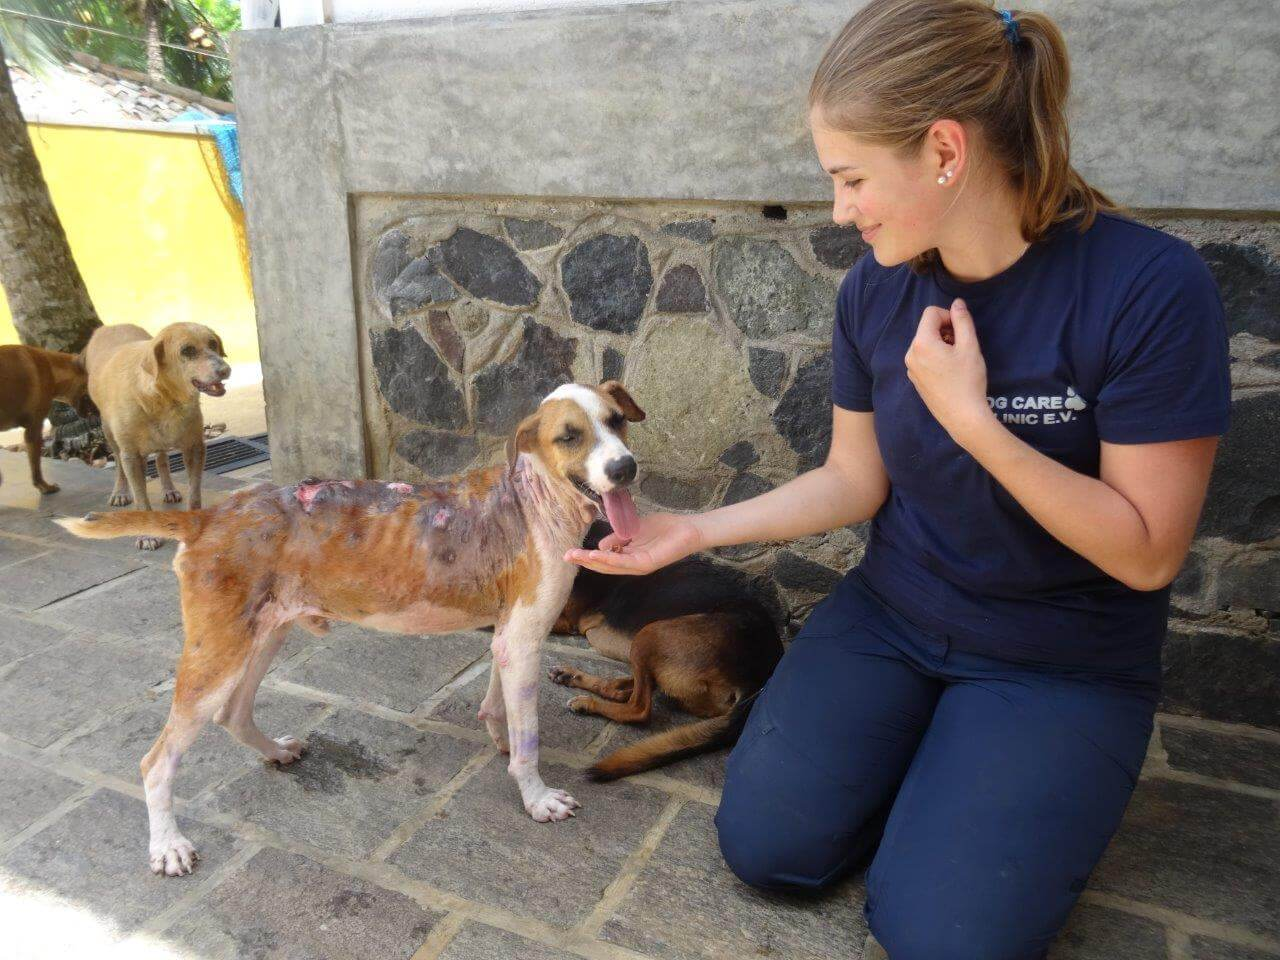 Volunteer in a Dog Care Project